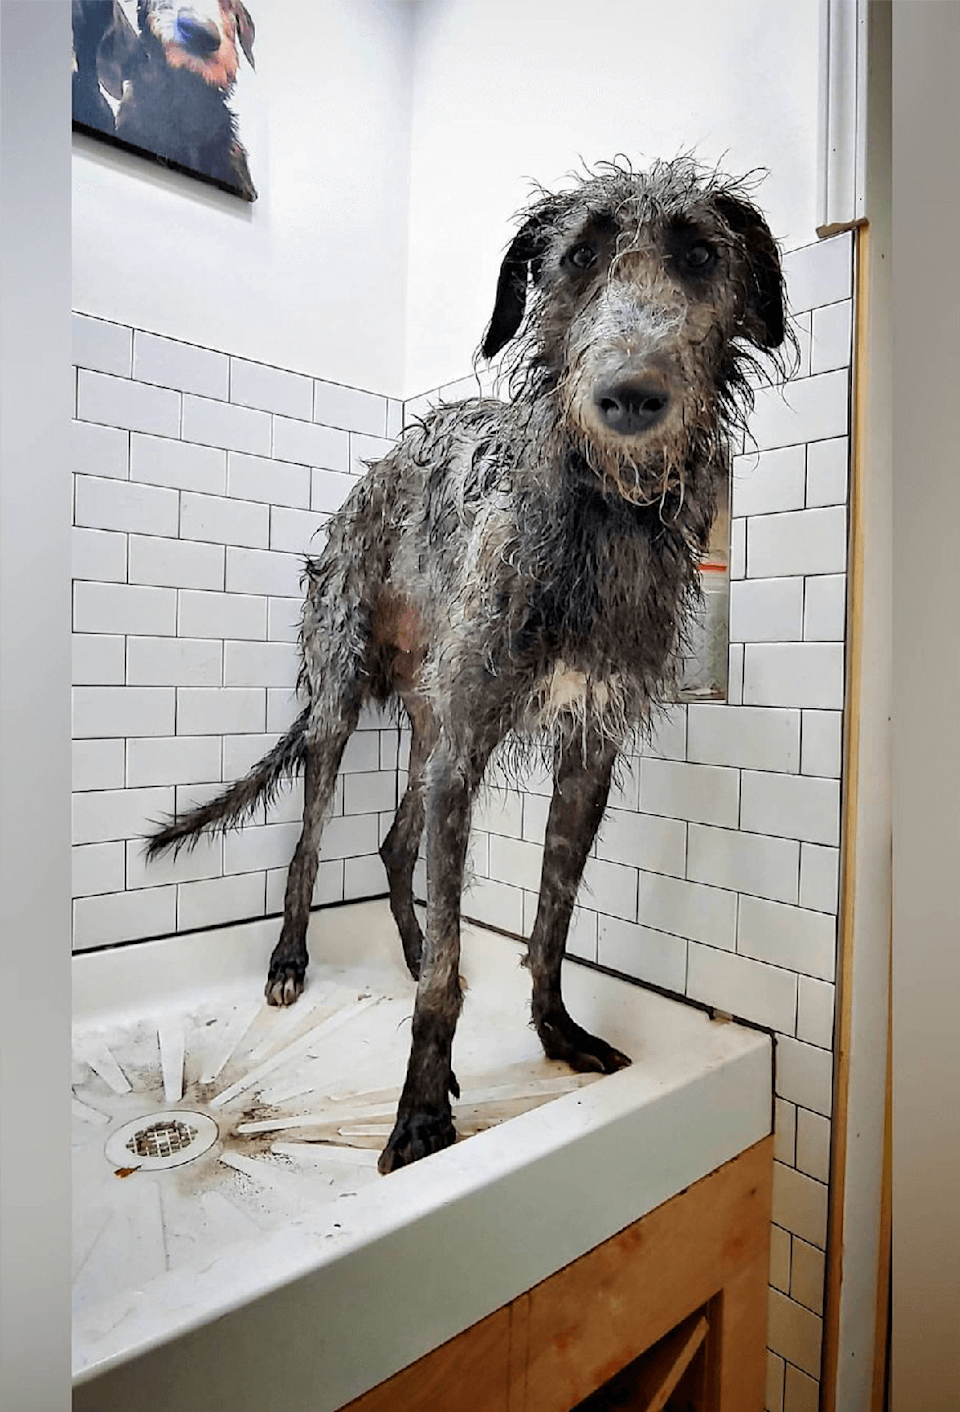 "<p>This one is certain to make you smile! Research by the team also found that a third of those with a furry family member regularly give them a massage when bathing them, but do you? </p><p><strong>READ MORE</strong>: <a href=""https://www.countryliving.com/uk/wildlife/pets/a32047729/groom-dog-at-home/"" rel=""nofollow noopener"" target=""_blank"" data-ylk=""slk:5 expert tips to help you groom your dog at home"" class=""link rapid-noclick-resp"">5 expert tips to help you groom your dog at home</a><br></p>"